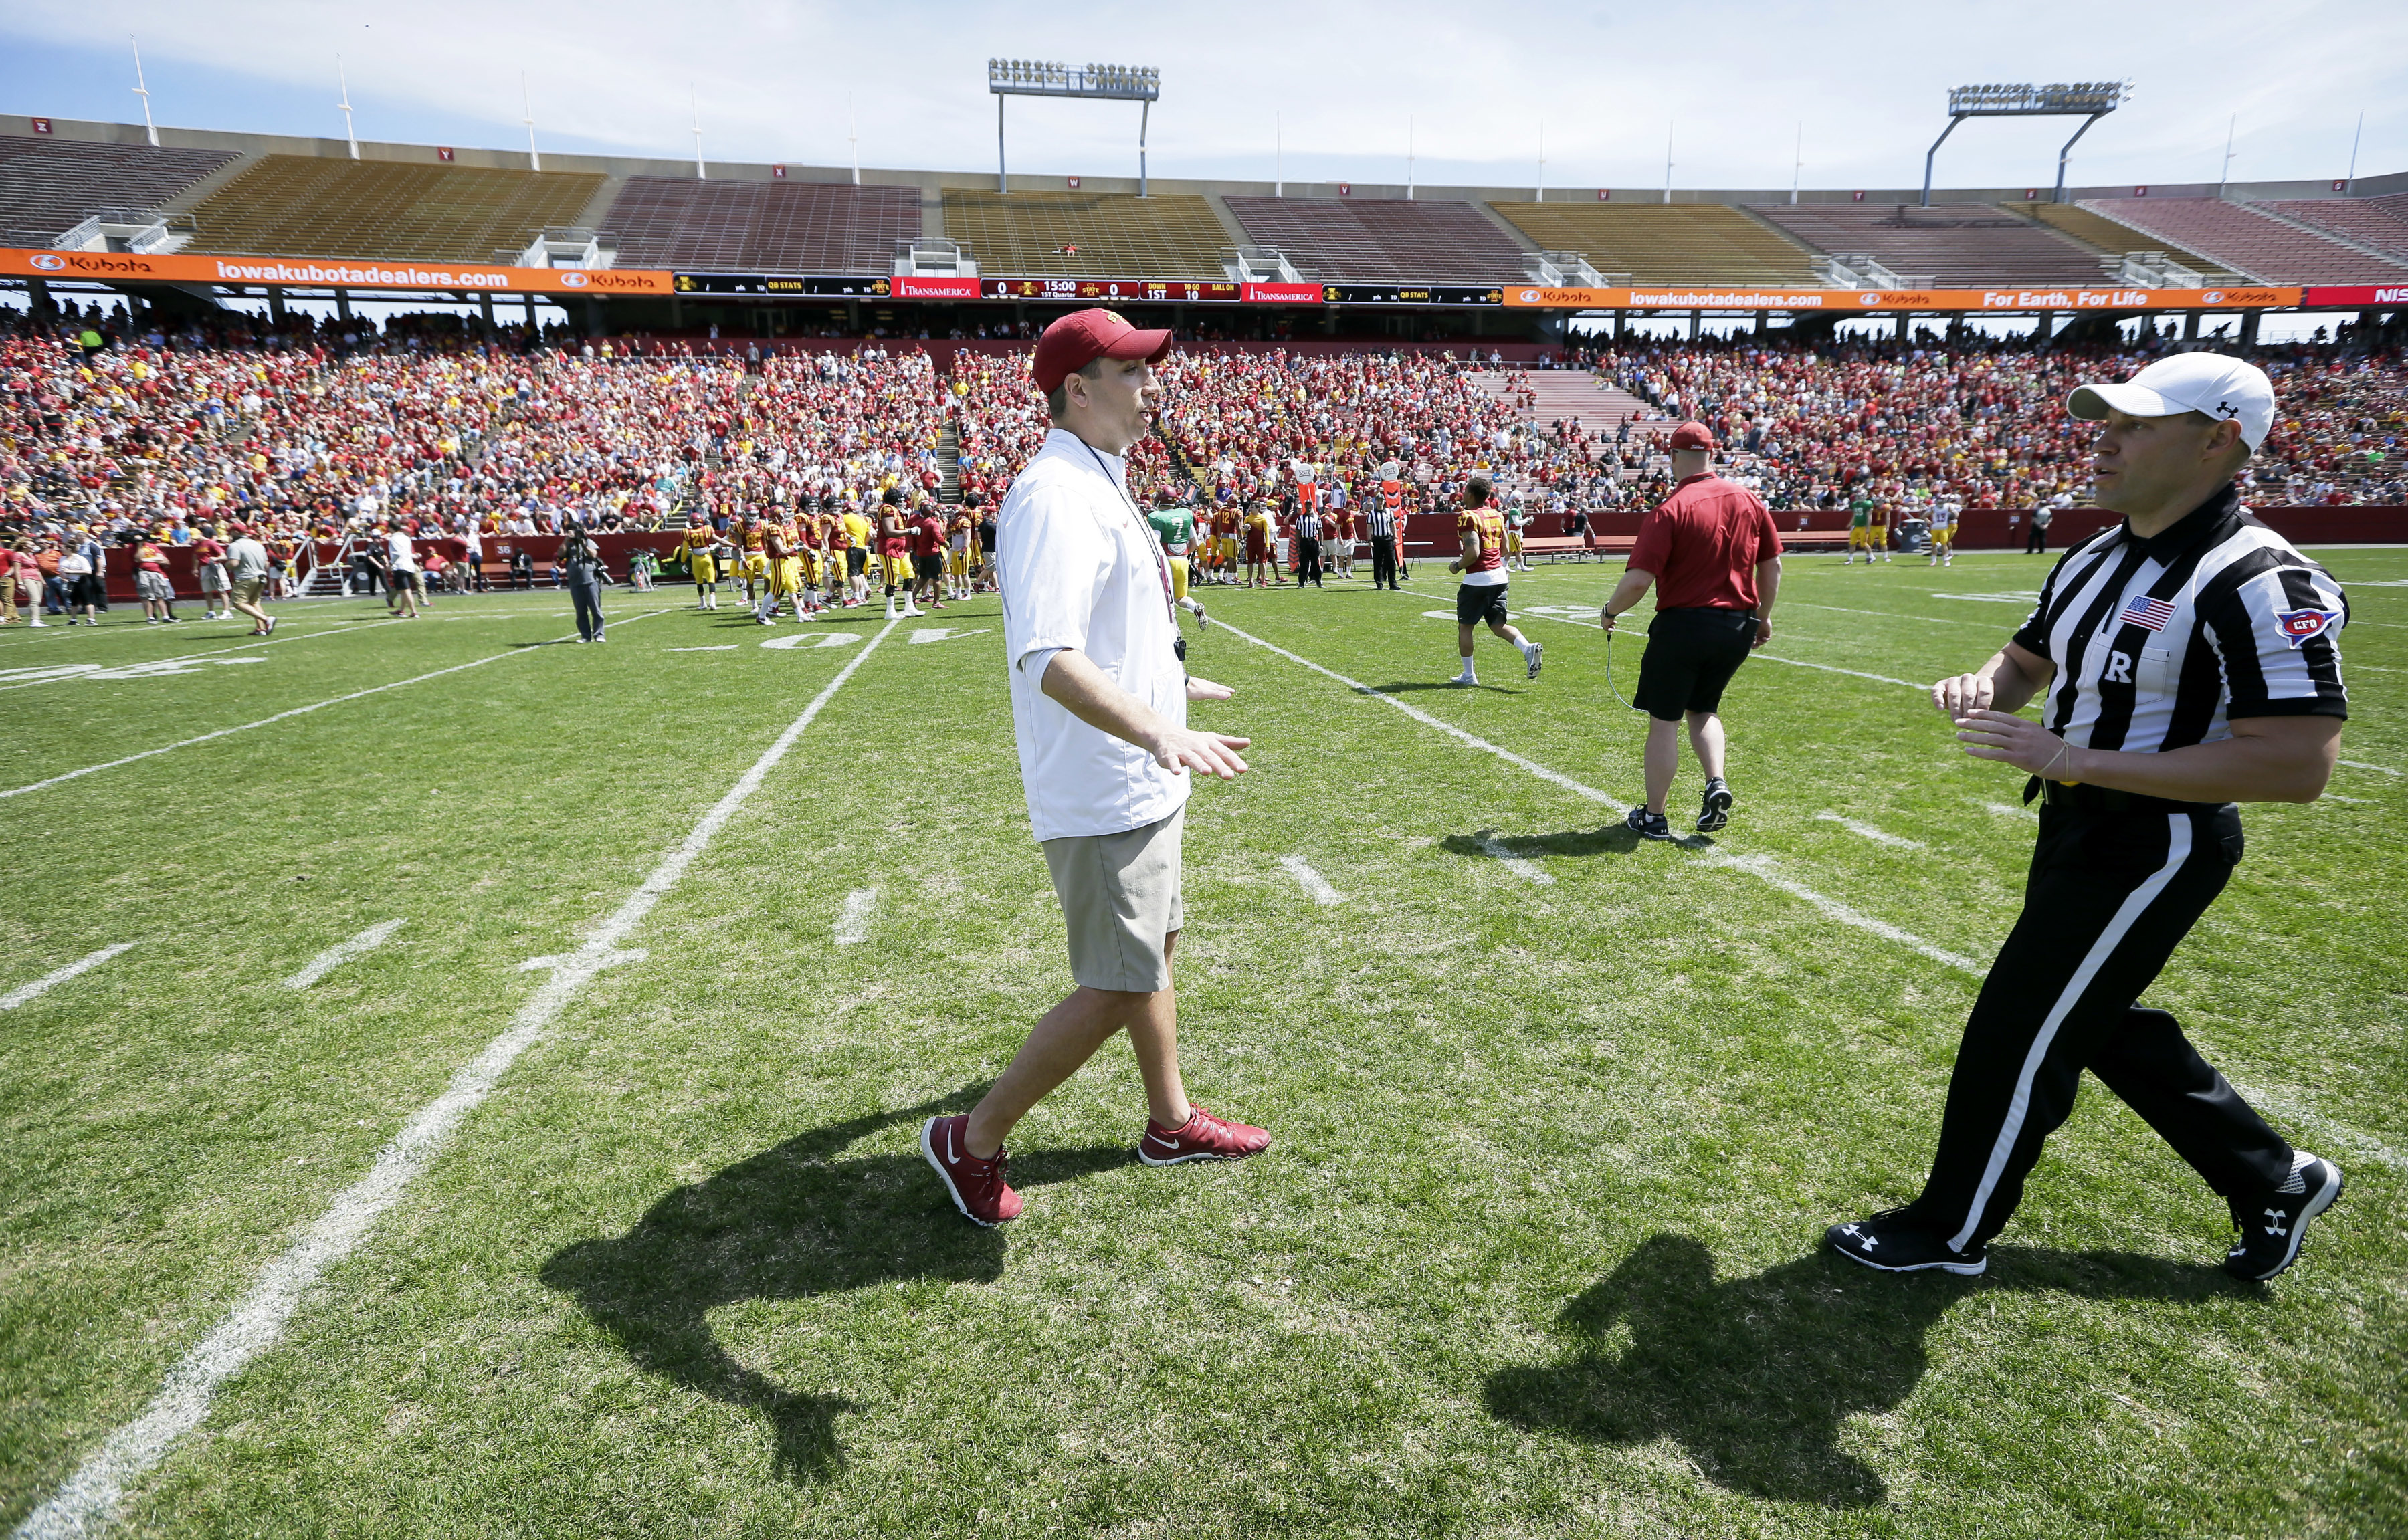 Iowa State head coach Matt Campbell, left, talks with an official before his team's spring NCAA college football game, Saturday, April 16, 2016, in Ames, Iowa. (AP Photo/Charlie Neibergall)